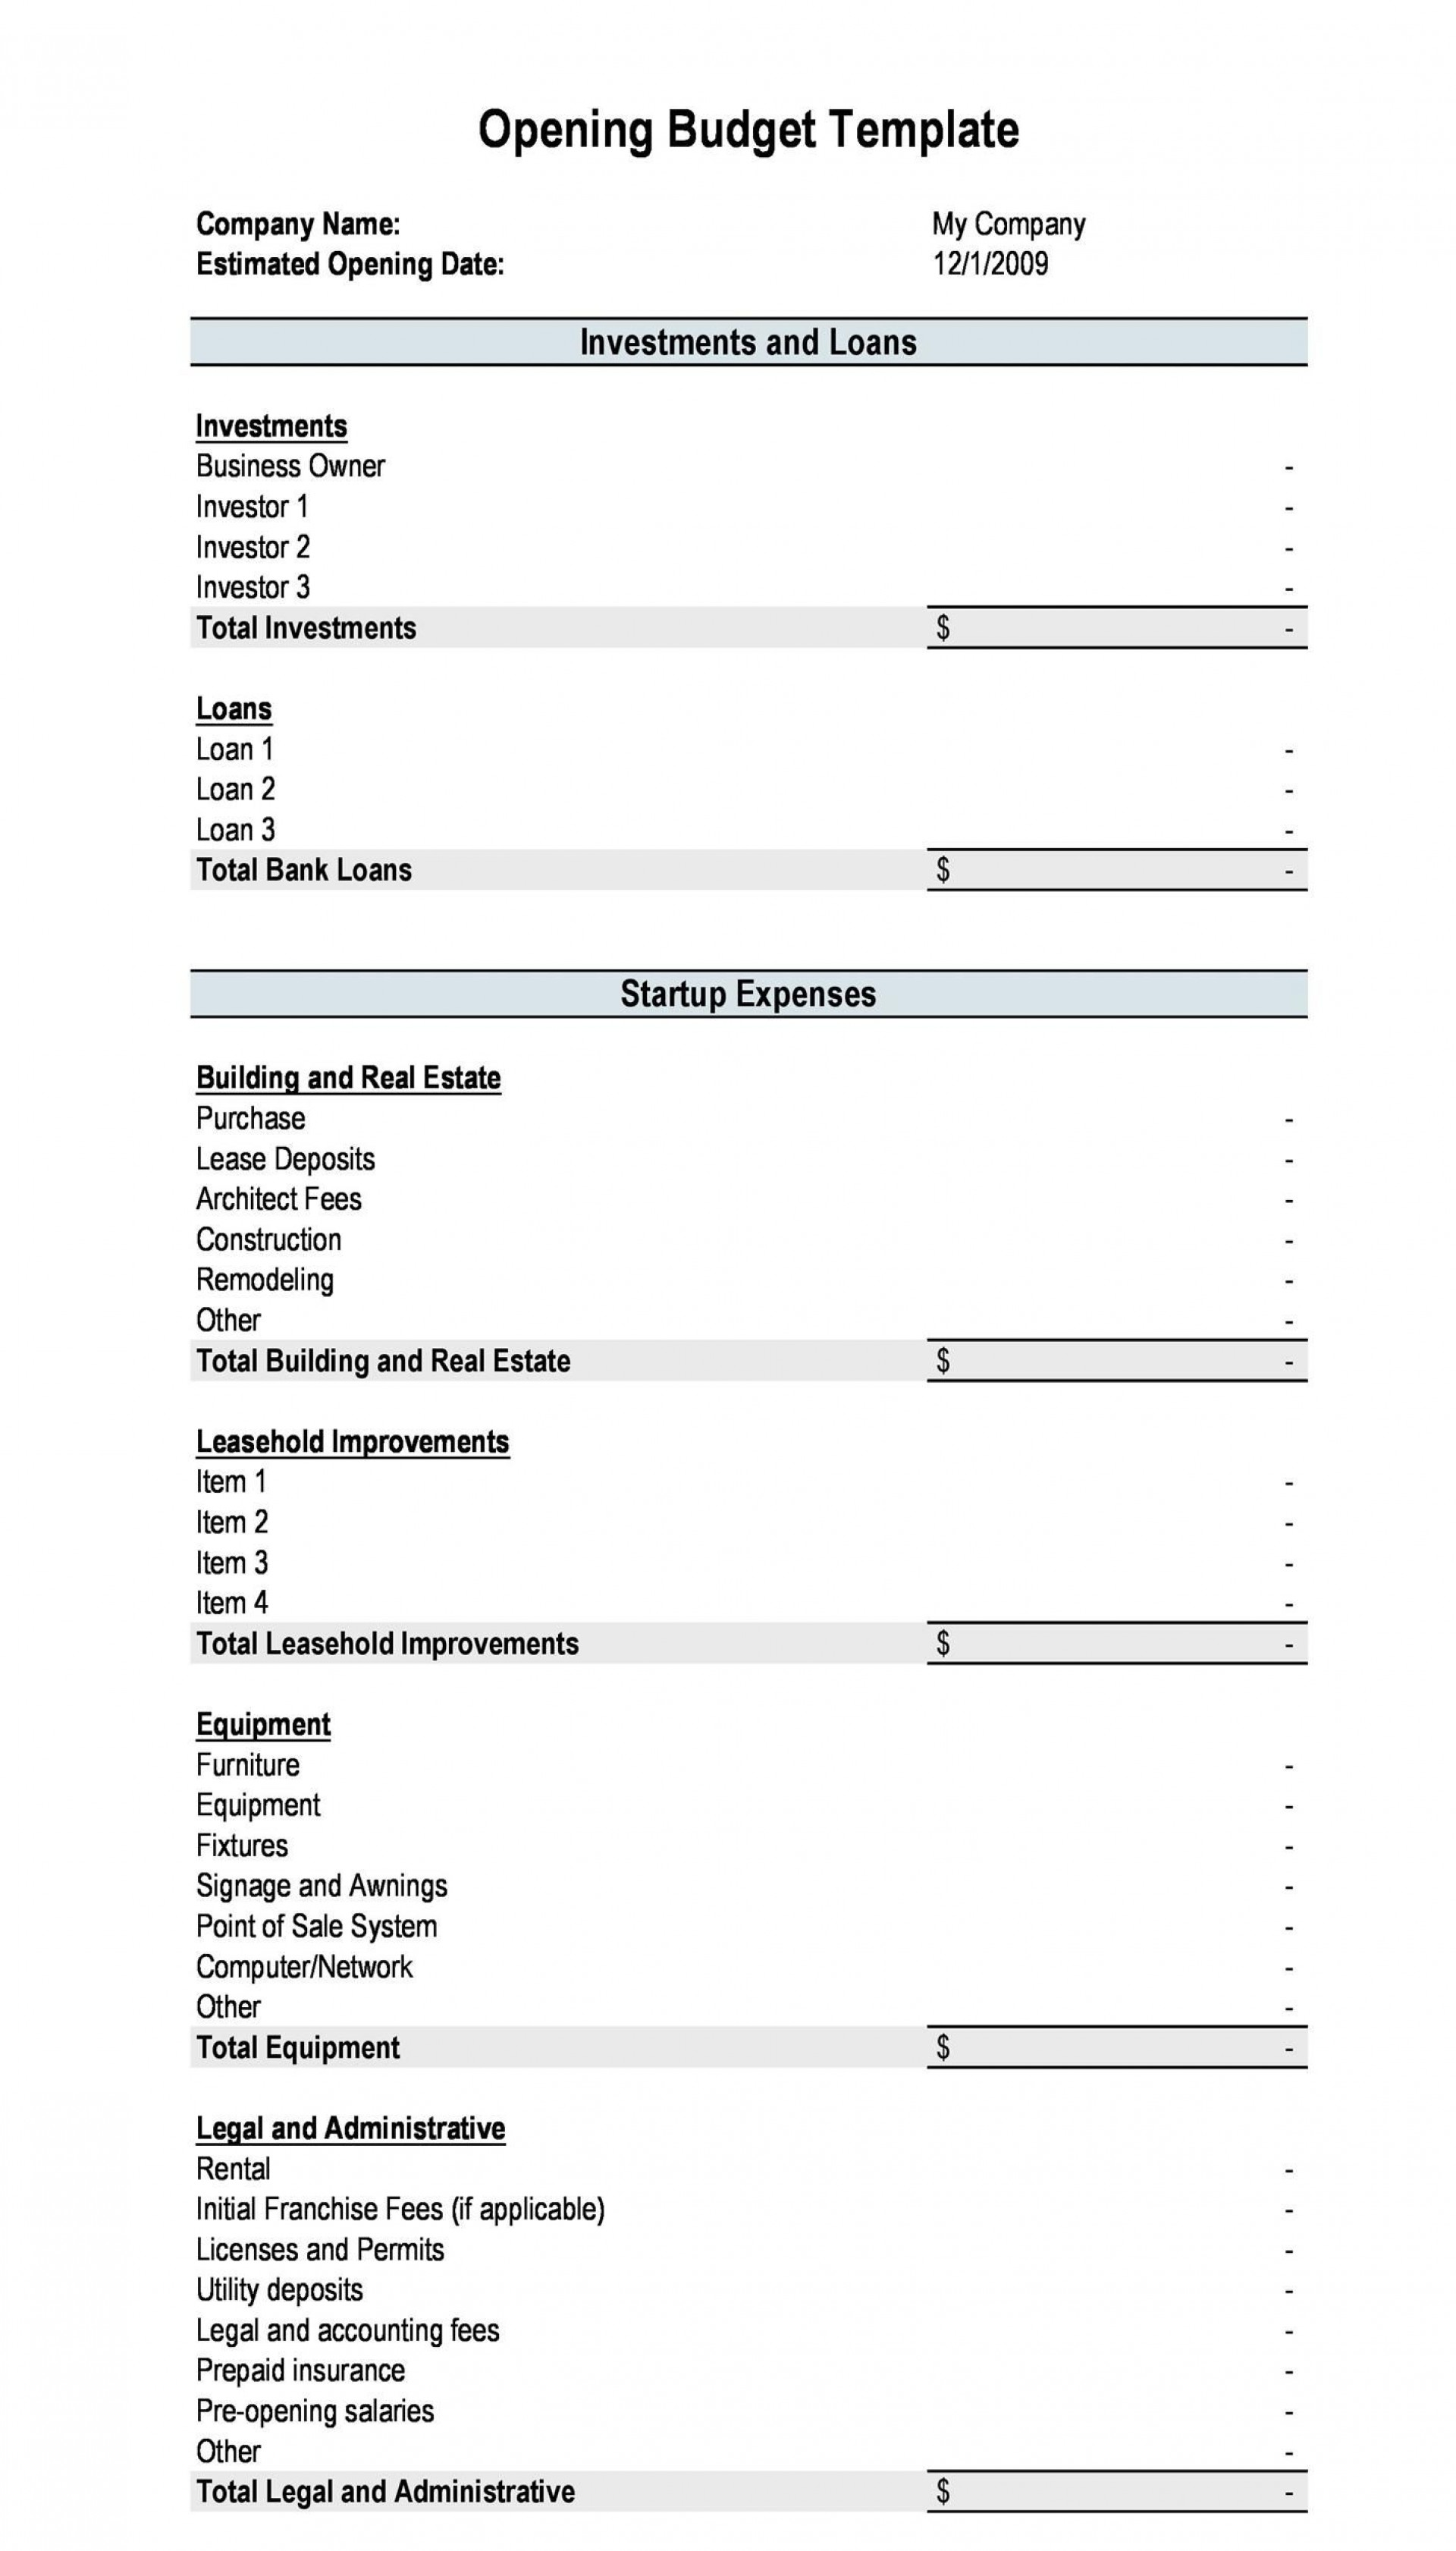 009 Marvelou Best Home Renovation Budget Template Excel Free Example 1920